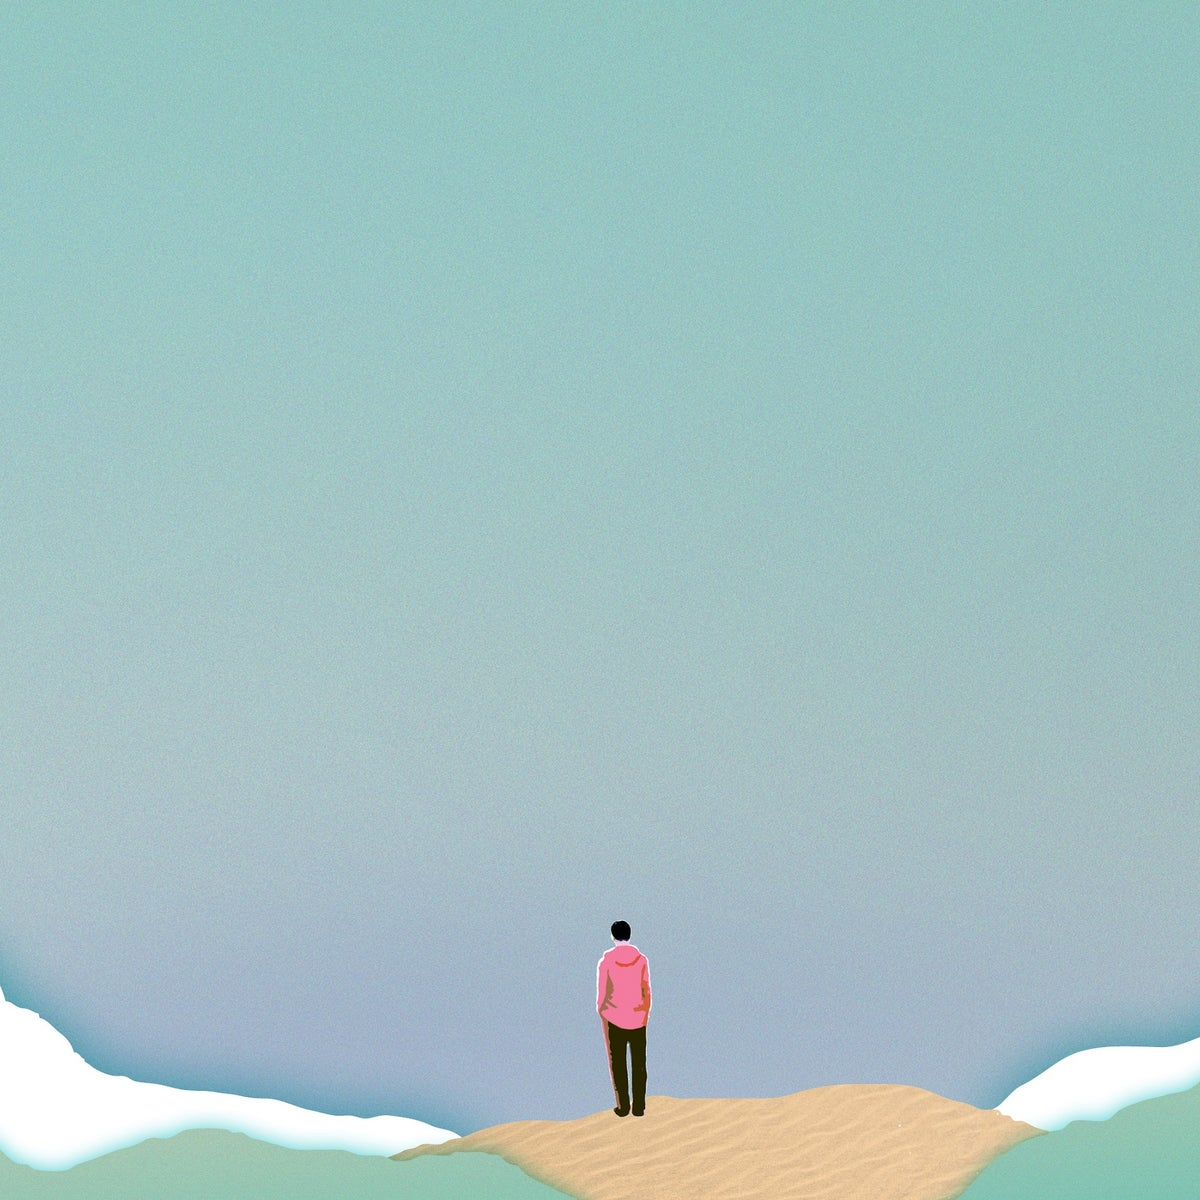 An illustration of a person standing on an island and looking out to the sea.